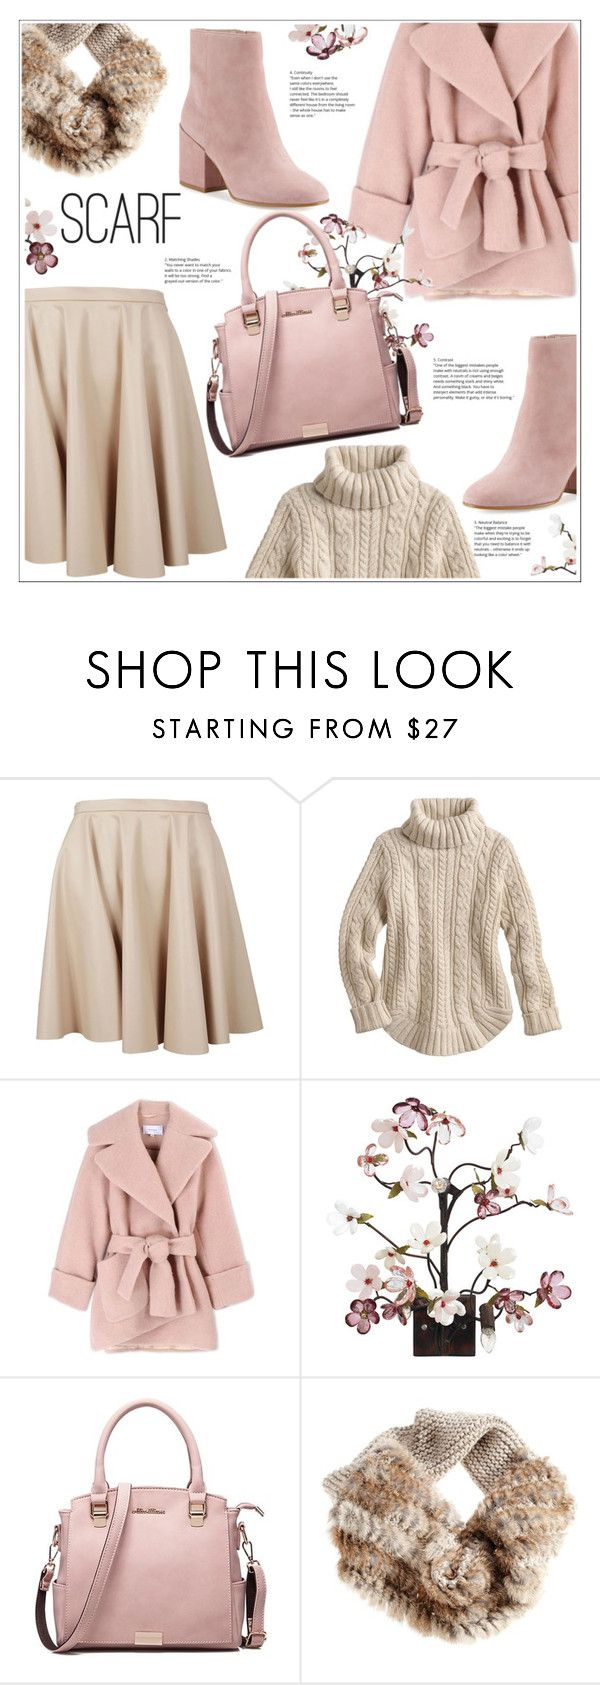 """S"" by stranjakivana ❤ liked on Polyvore featuring Giamba, Carven, Canopy Designs, Sam Edelman, scarf and polyvoreeditorial"